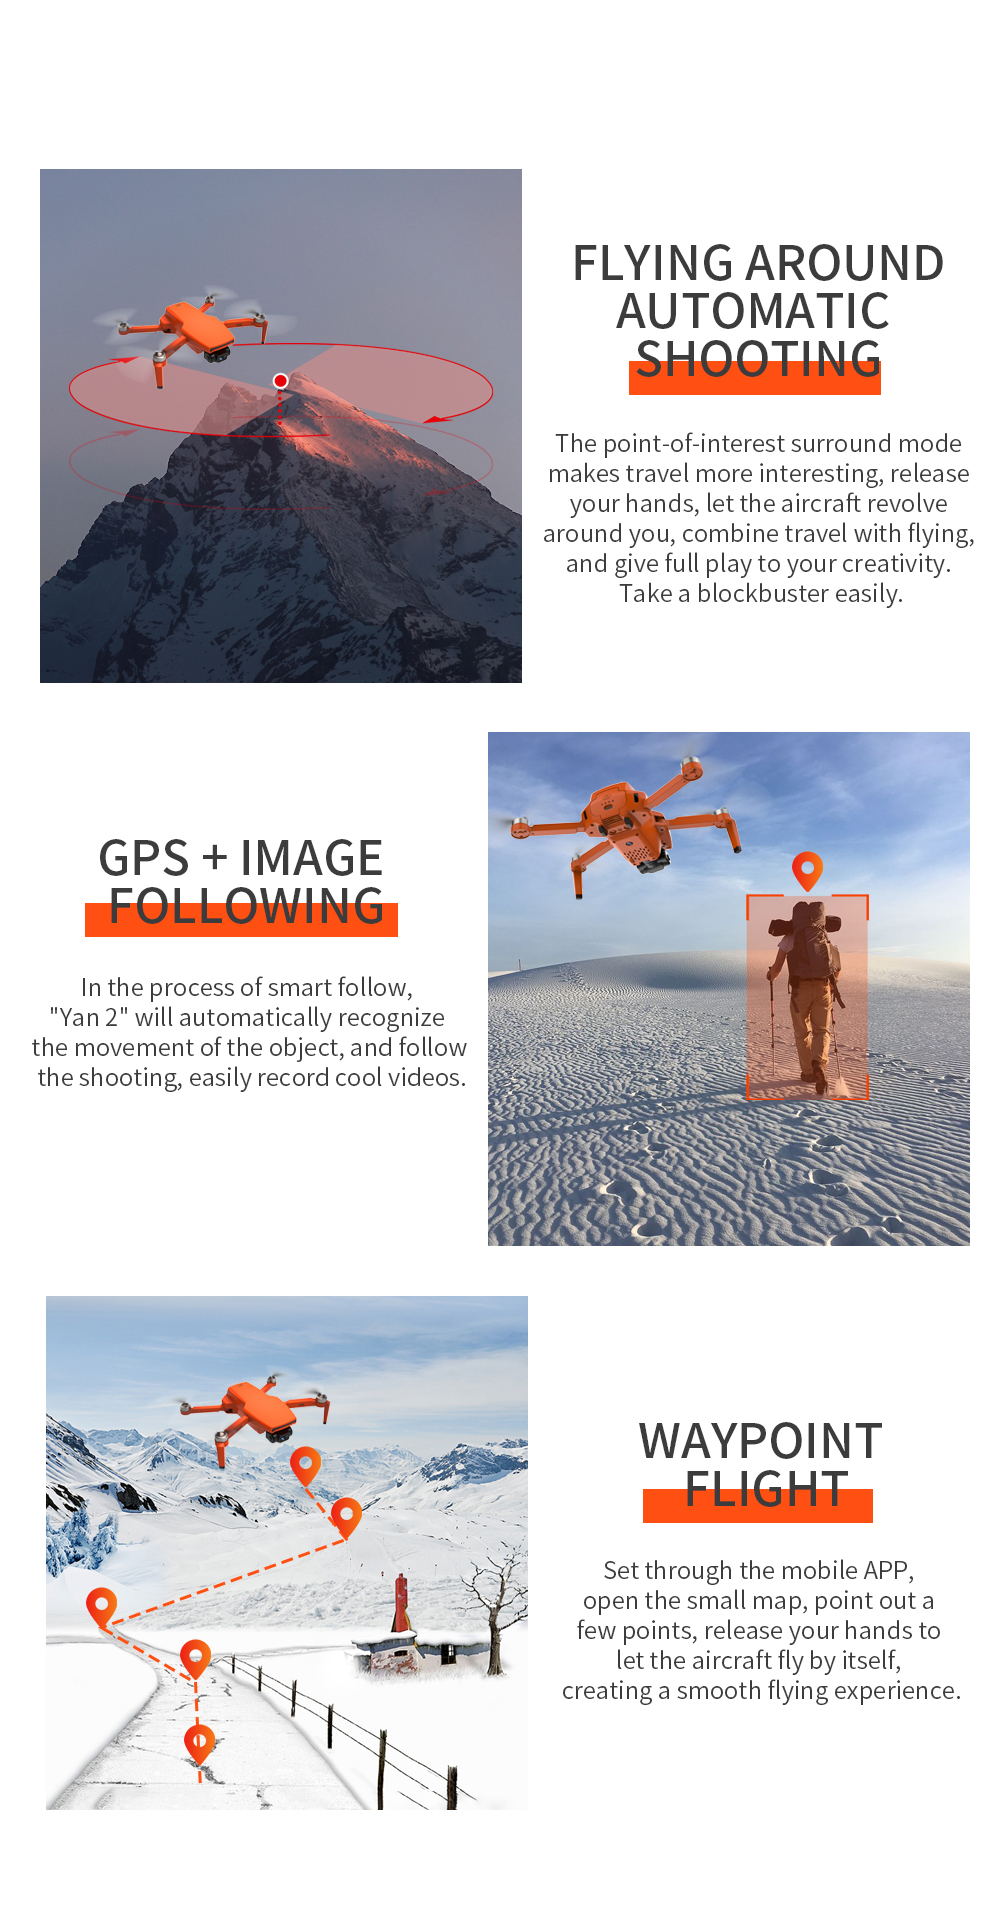 H0da76a8ad0484c00bad8e2e6b36250da8 - SG108 Pro GPS Drone 4K Profesional Dual HD Camera 2-Axis Gimbal 5G WiFi Aerial Photography Brushless Foldable Quadcopter RC Dron